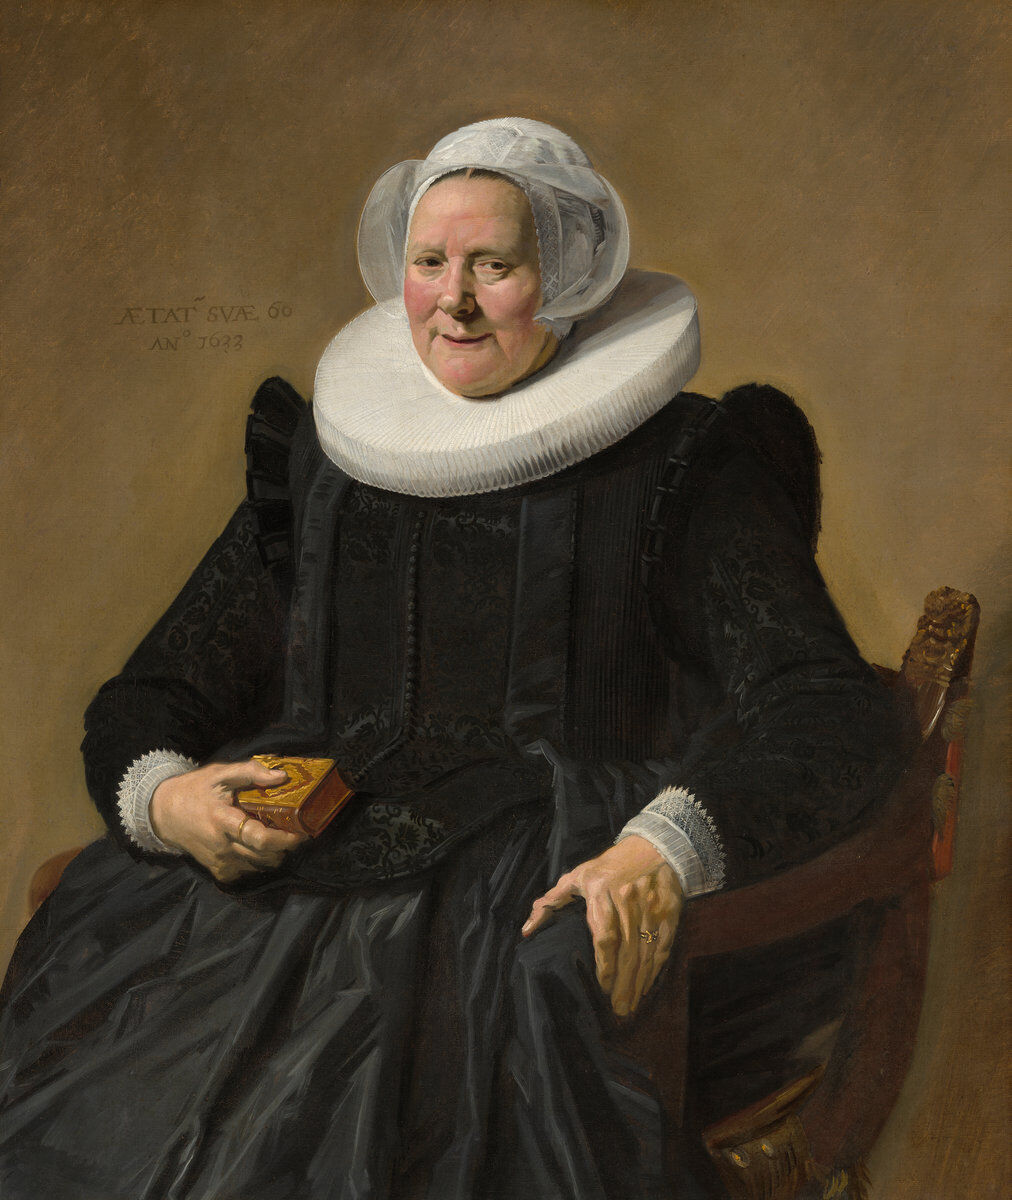 Frans Hals, Portrait of an Elderly Lady, 1633. Courtesy of the National Gallery of Art.